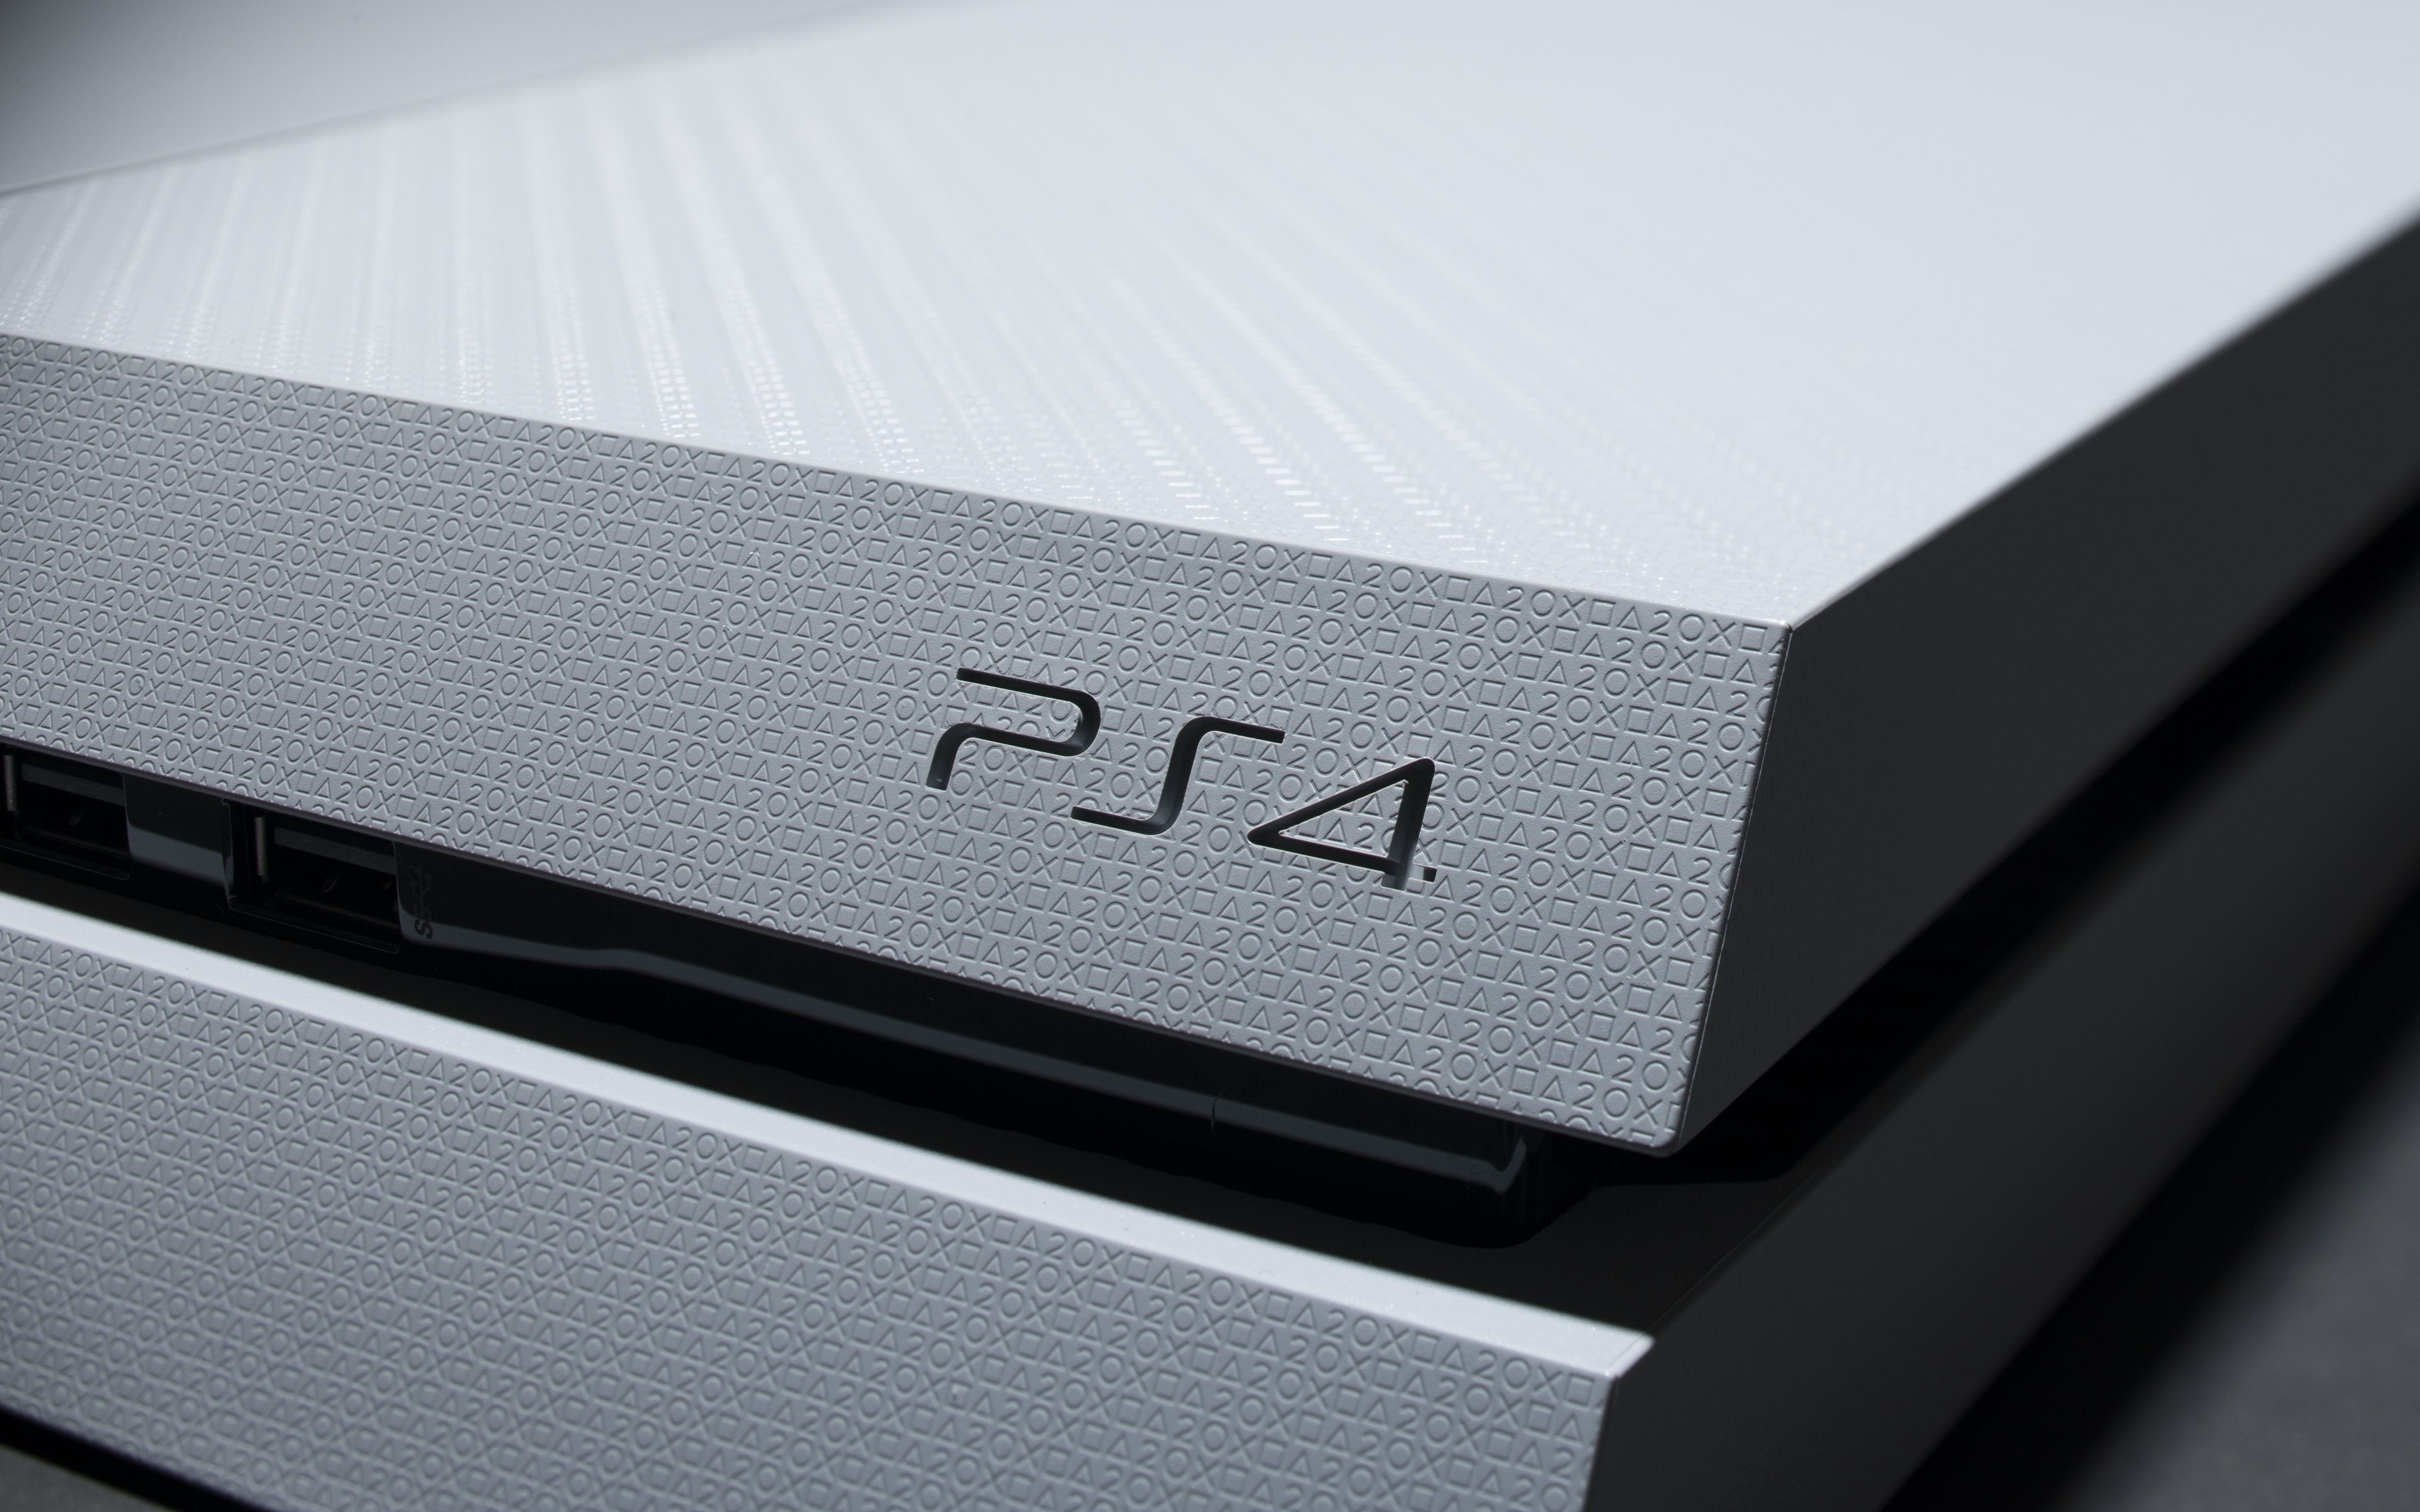 Wallpaper Ps4 Game Console Sony Playstation 4k Ps4 34069 Hd Wallpaper Backgrounds Download